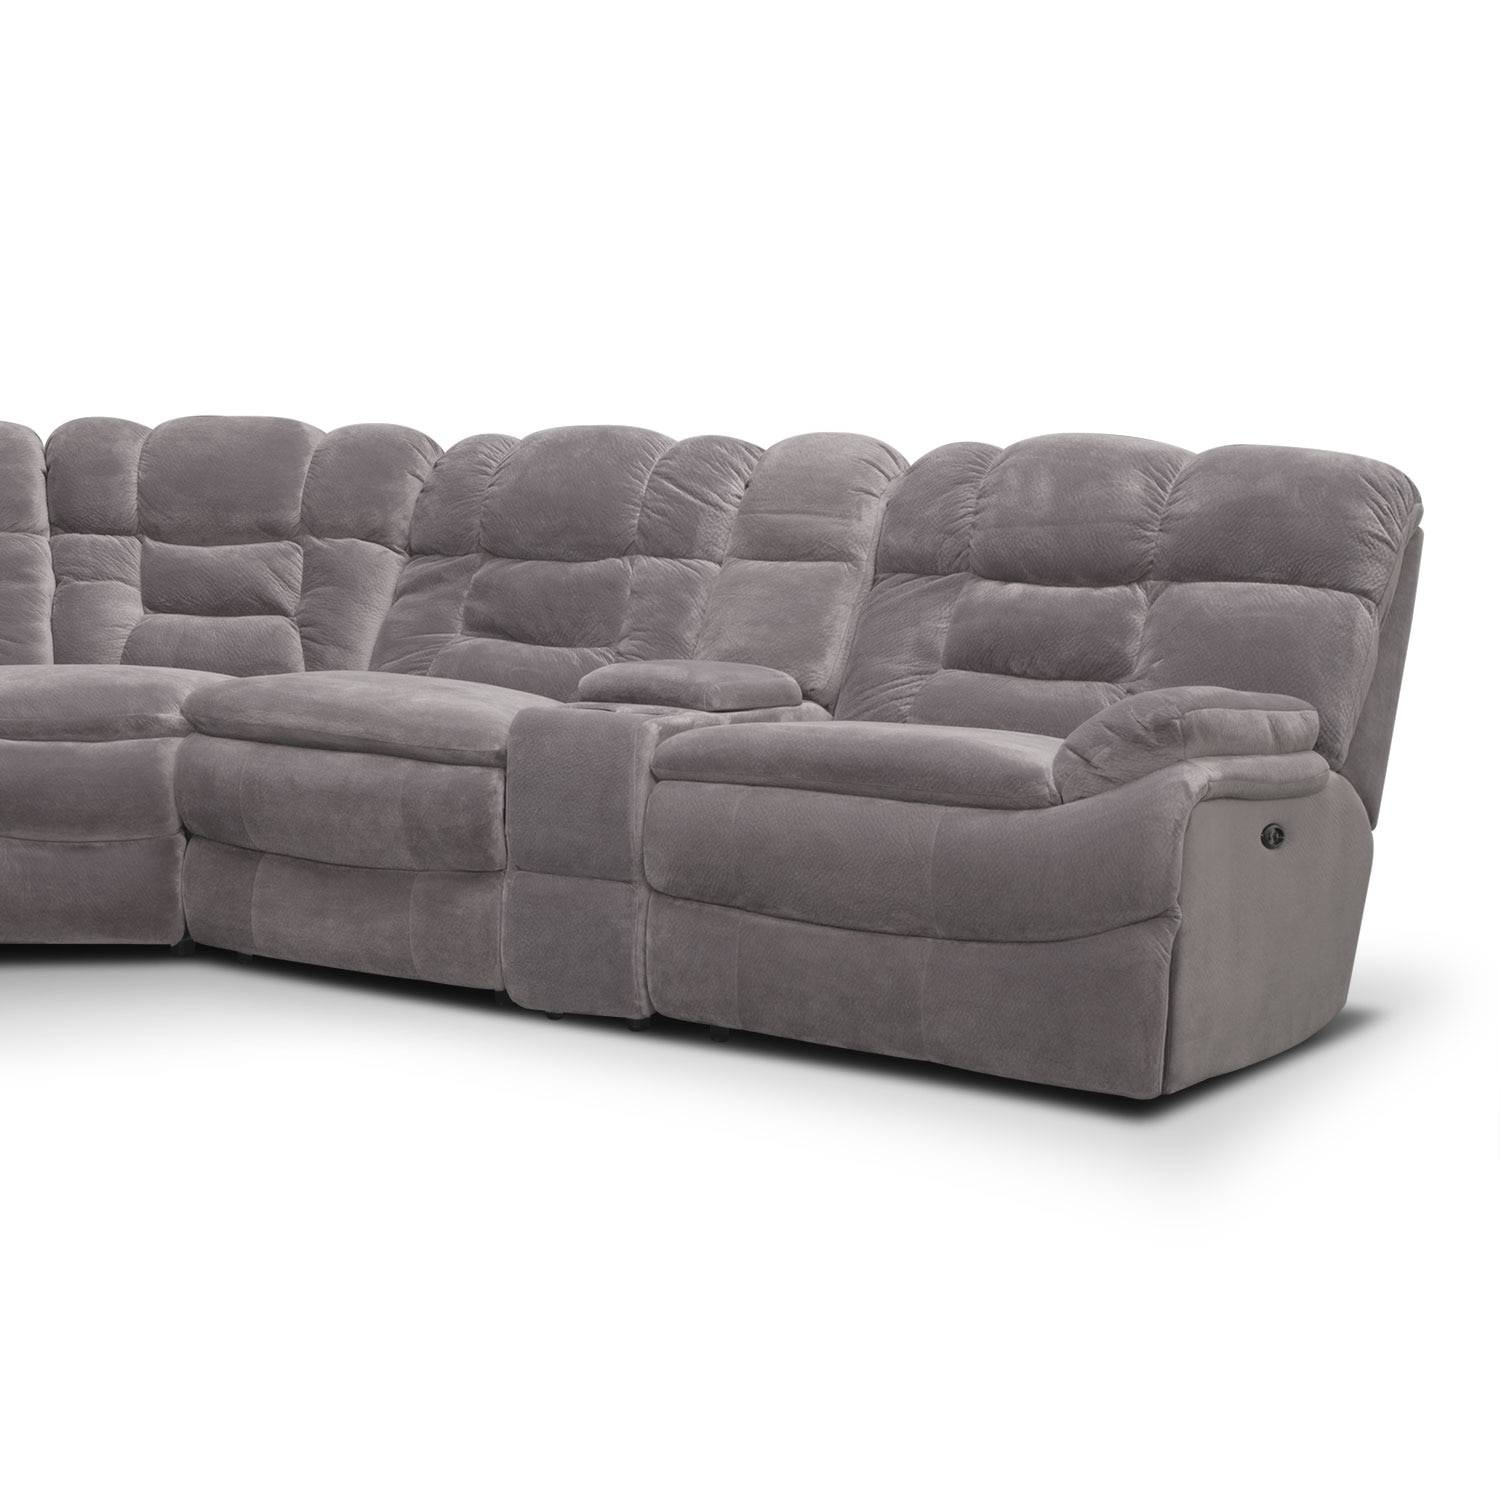 Big Softie 6-Piece Power Reclining Sectional - Gray | Value City in 6 Piece Leather Sectional Sofa (Image 10 of 30)